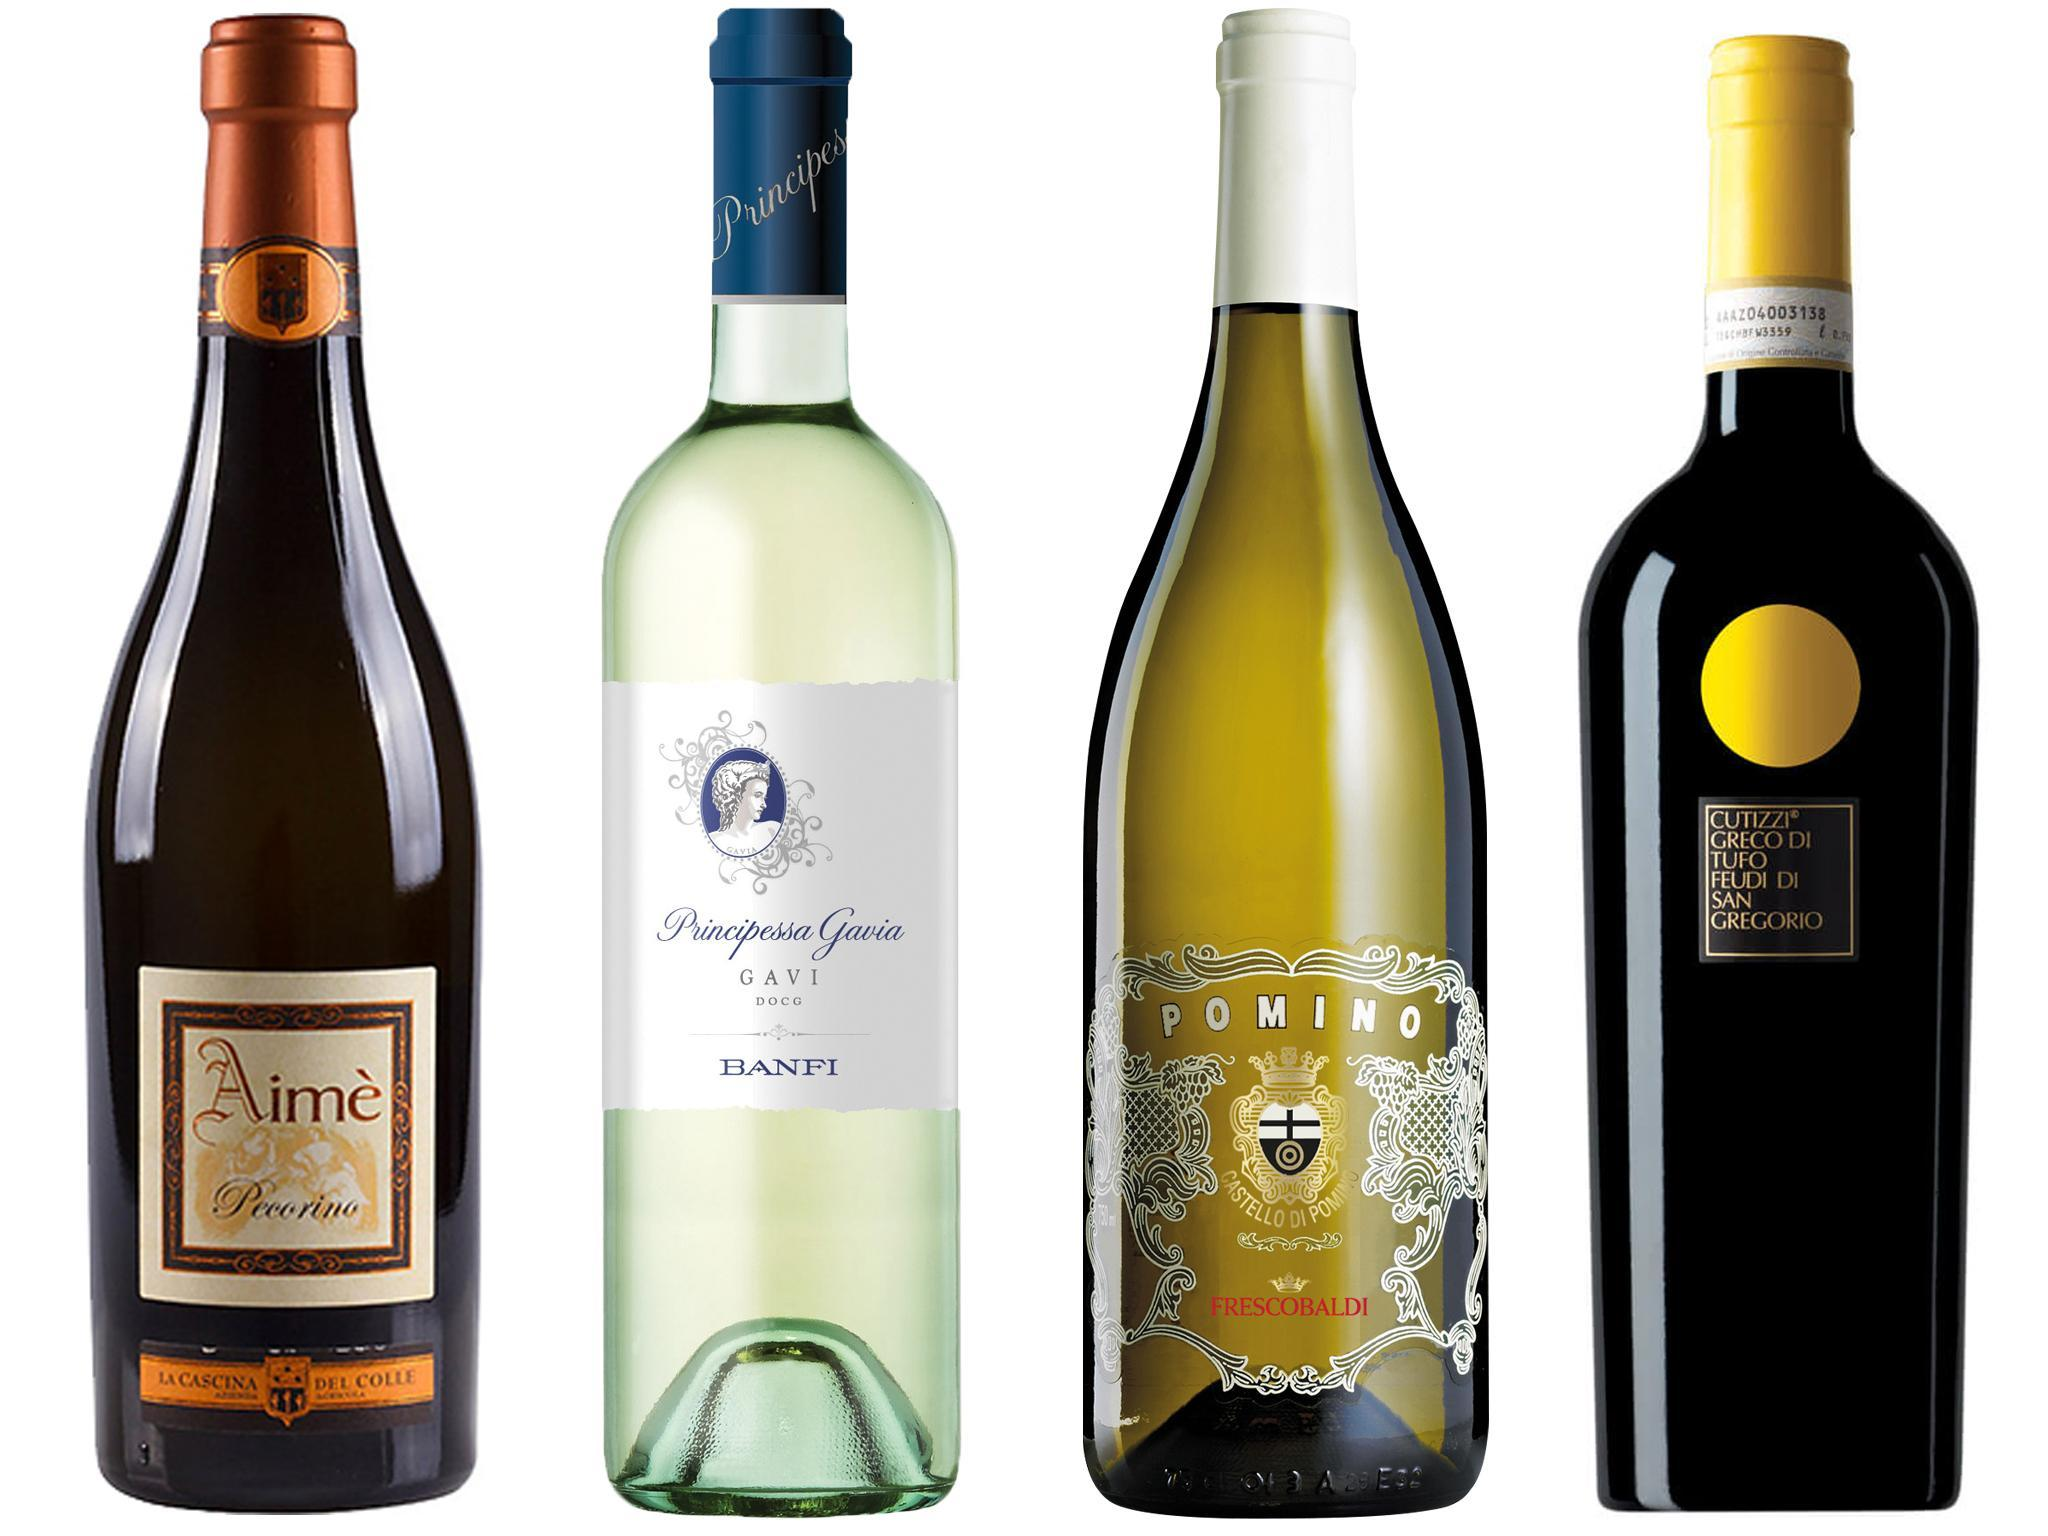 Wines of the week: 7 sensational Italian whites to drink now